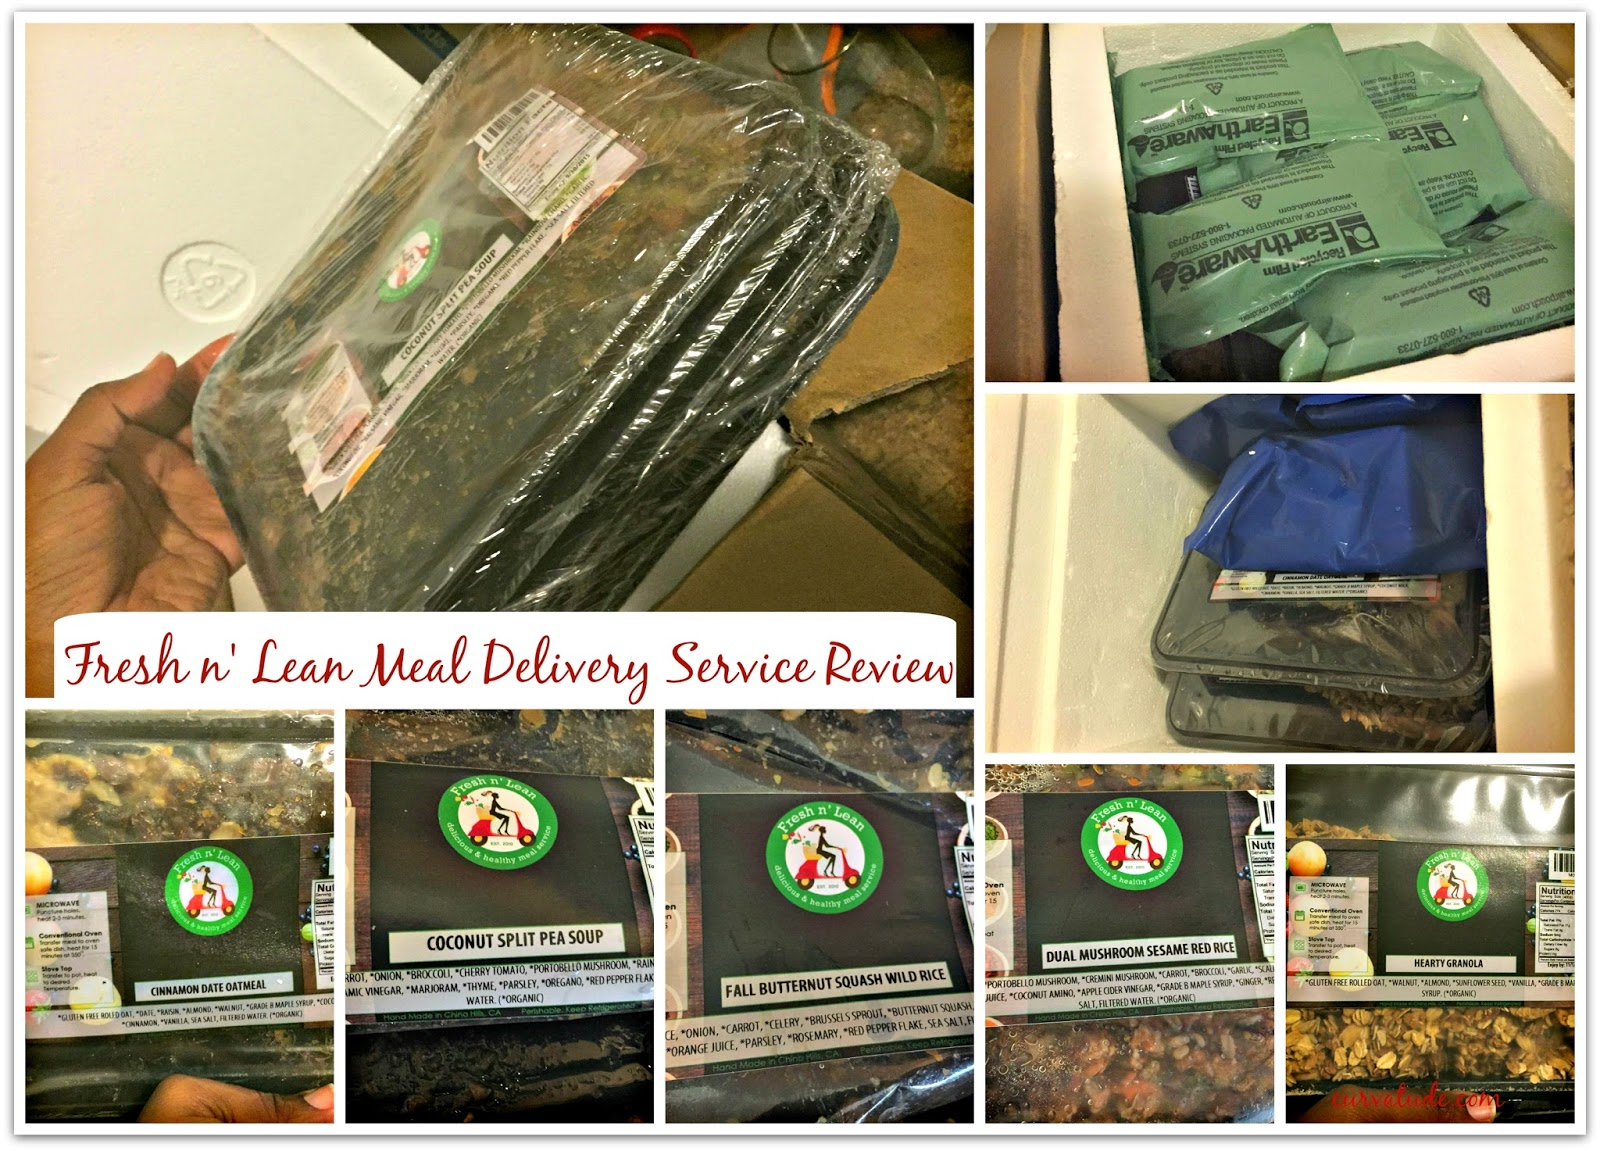 Lifestyle} Fresh n' Lean Meal Delivery Service Review + Giveaway